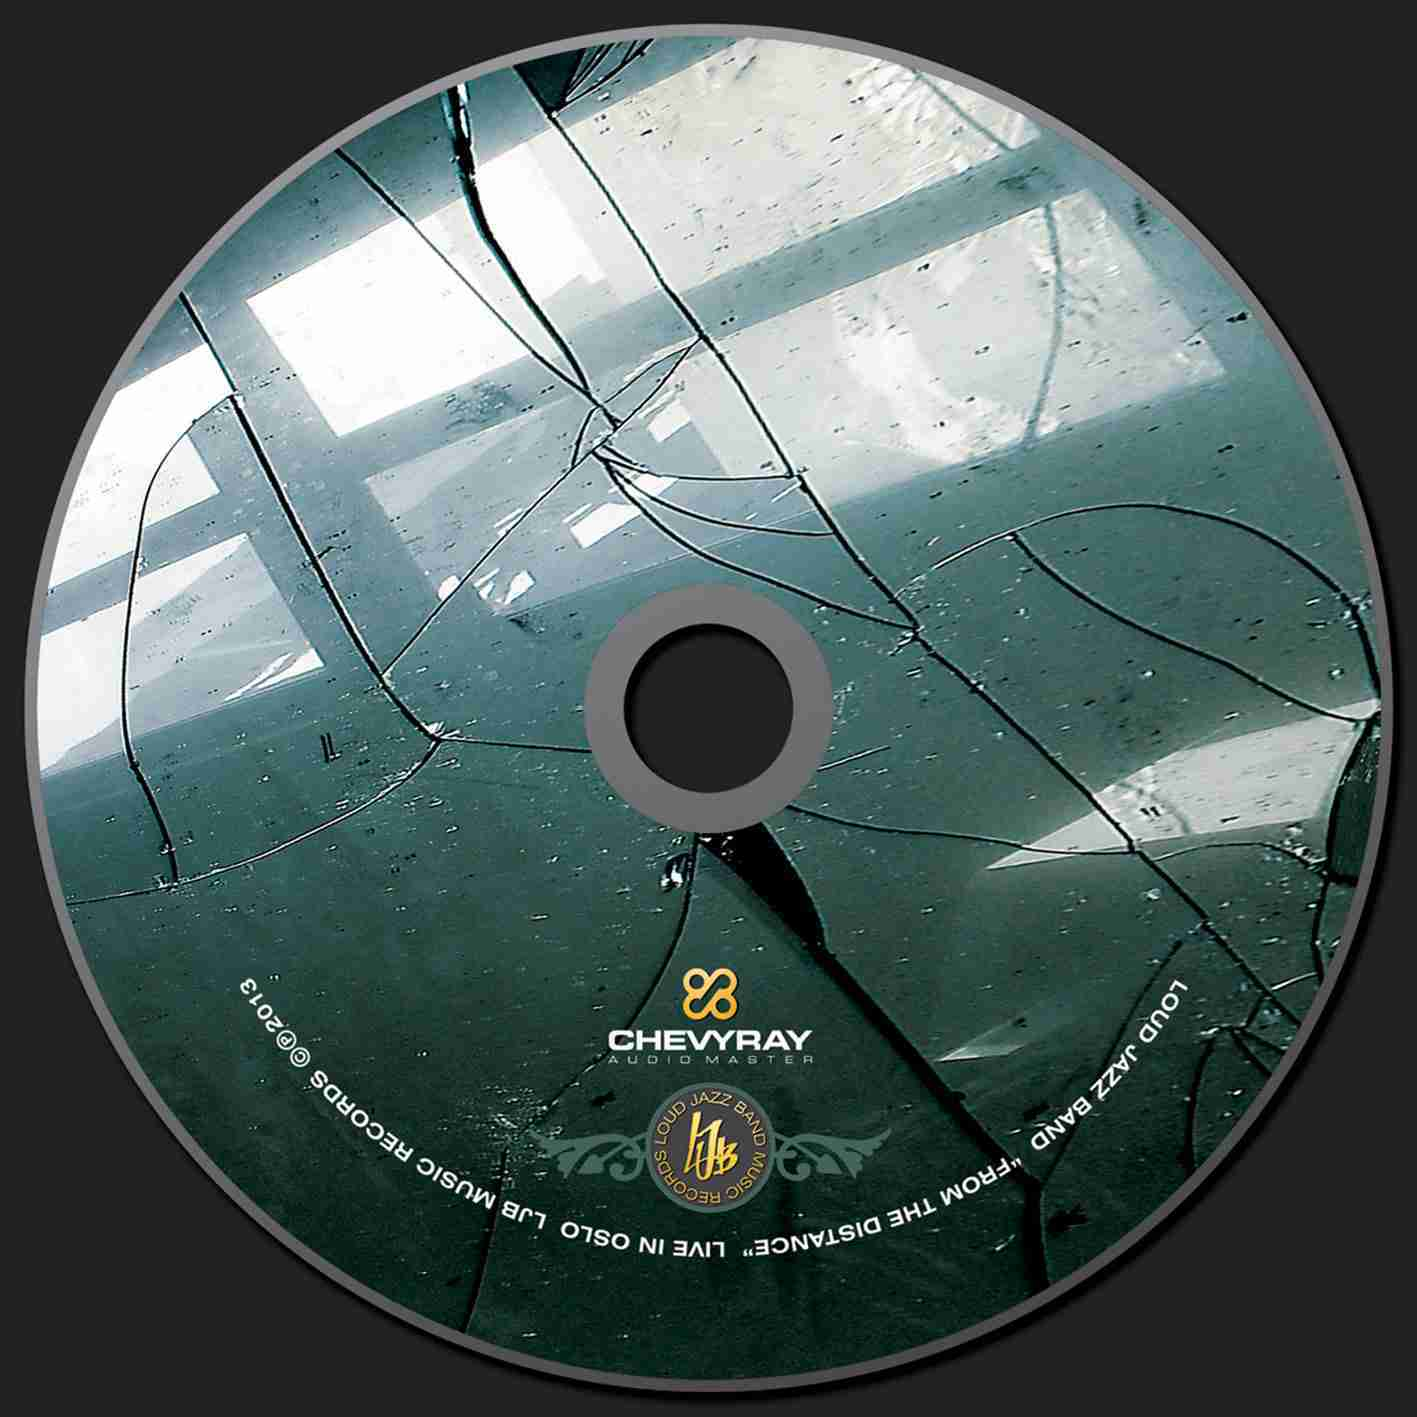 From the Distance-disc project